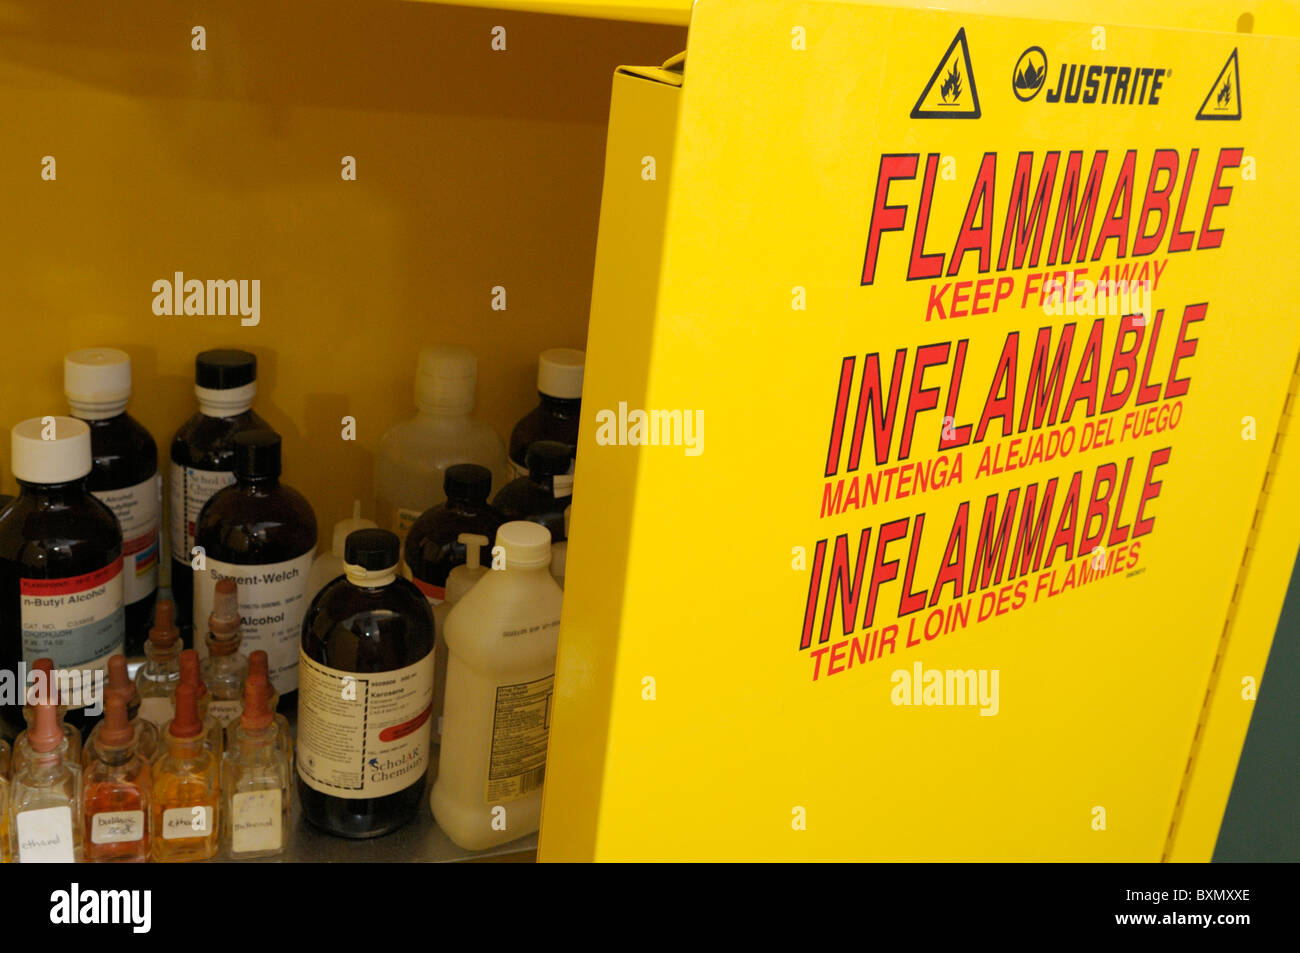 Storage Cabinet For Flammable Chemicals Stock Photo Alamy